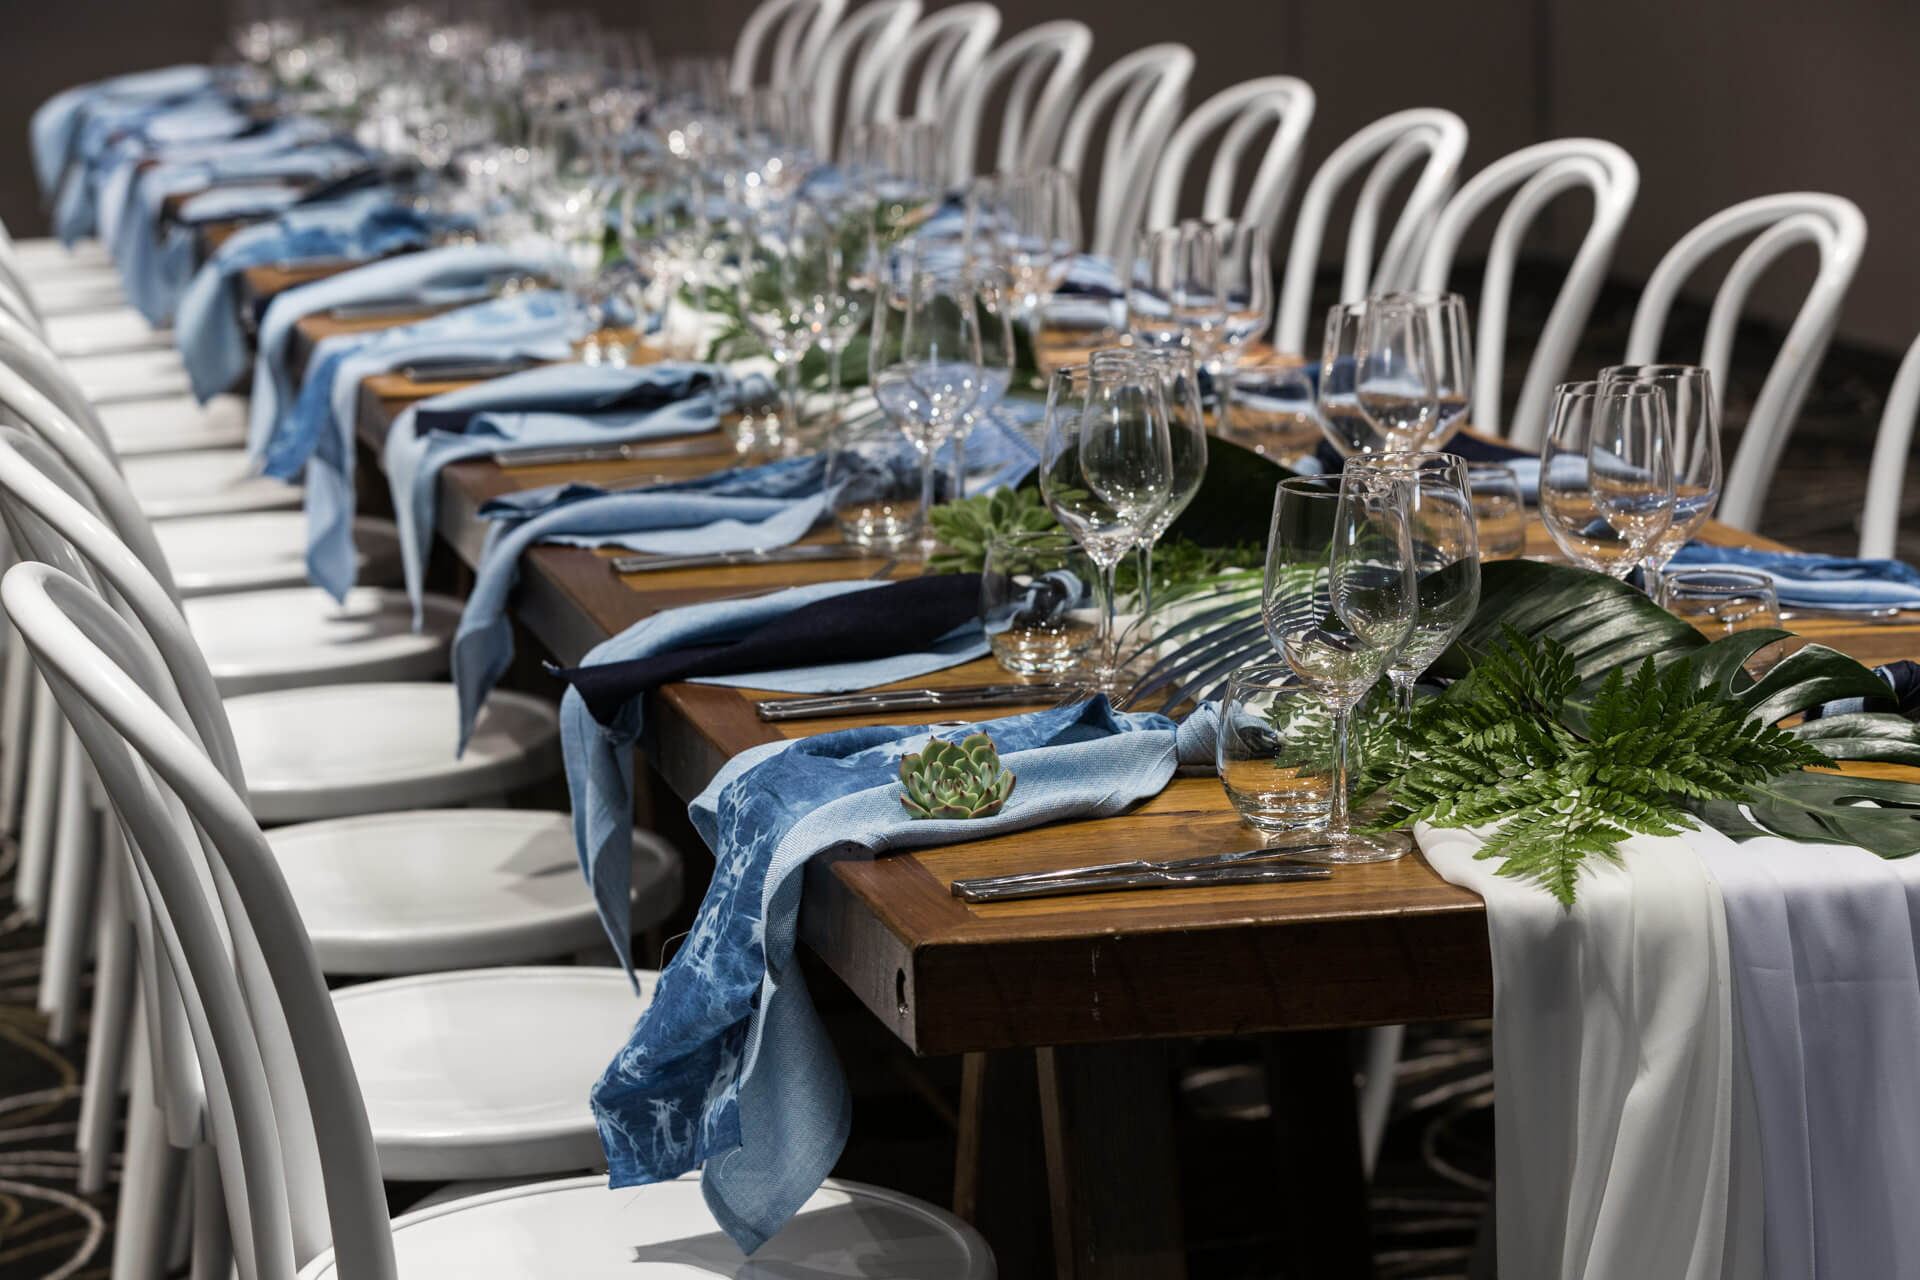 Geelong Events Centre | Private Events Venue in Geelong CBD